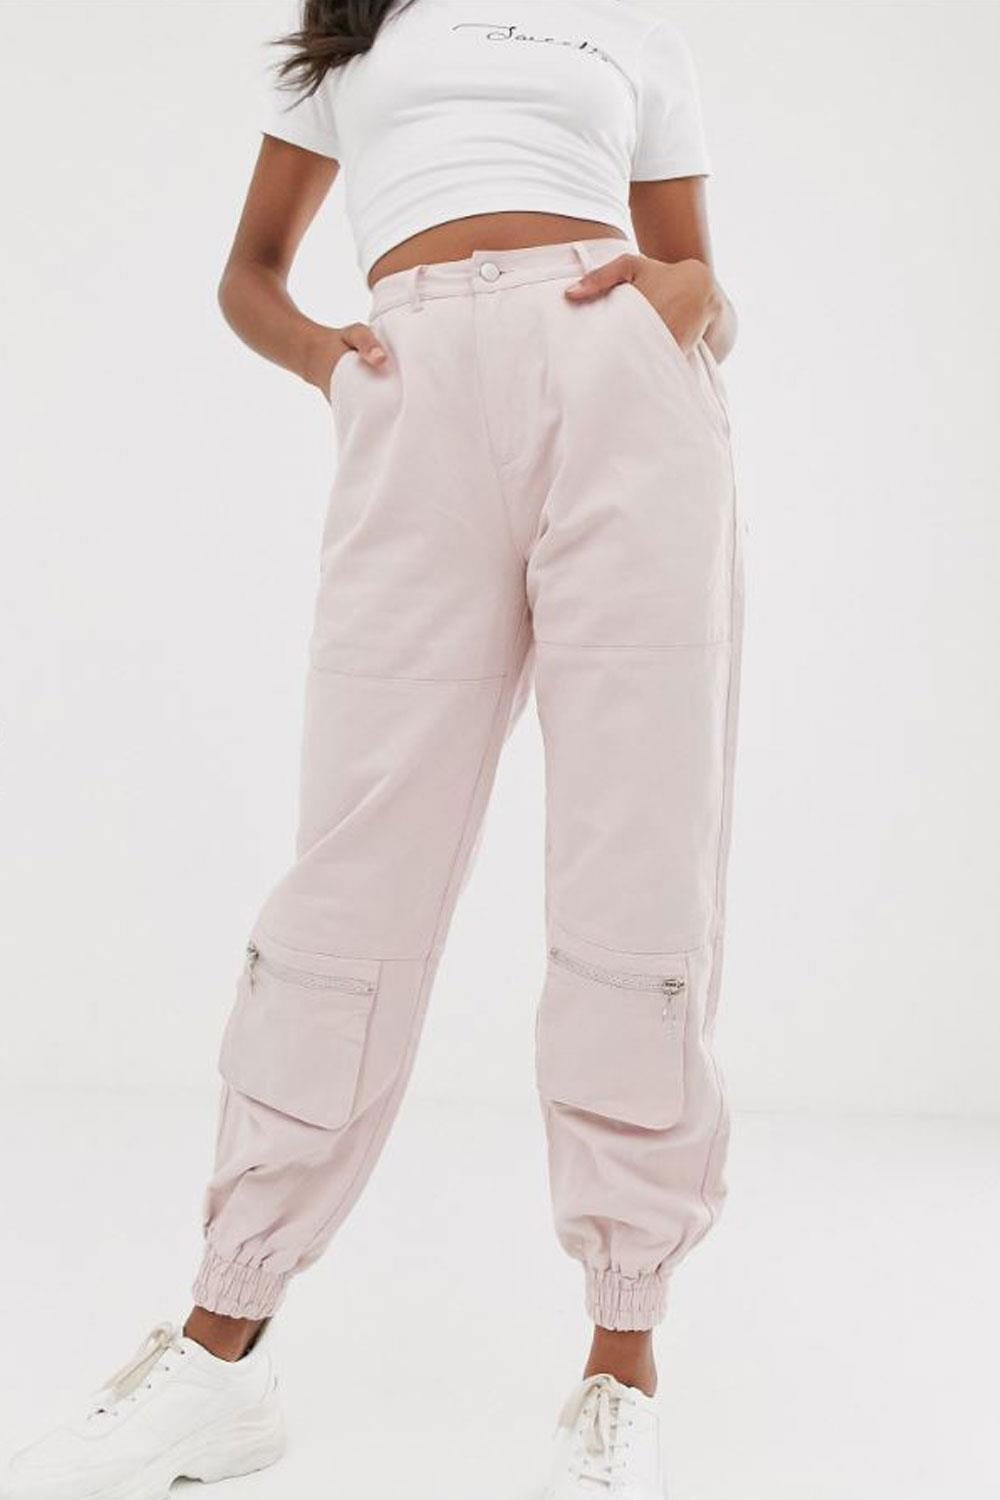 jeans baggy PrettyLittleThing, 41,99€